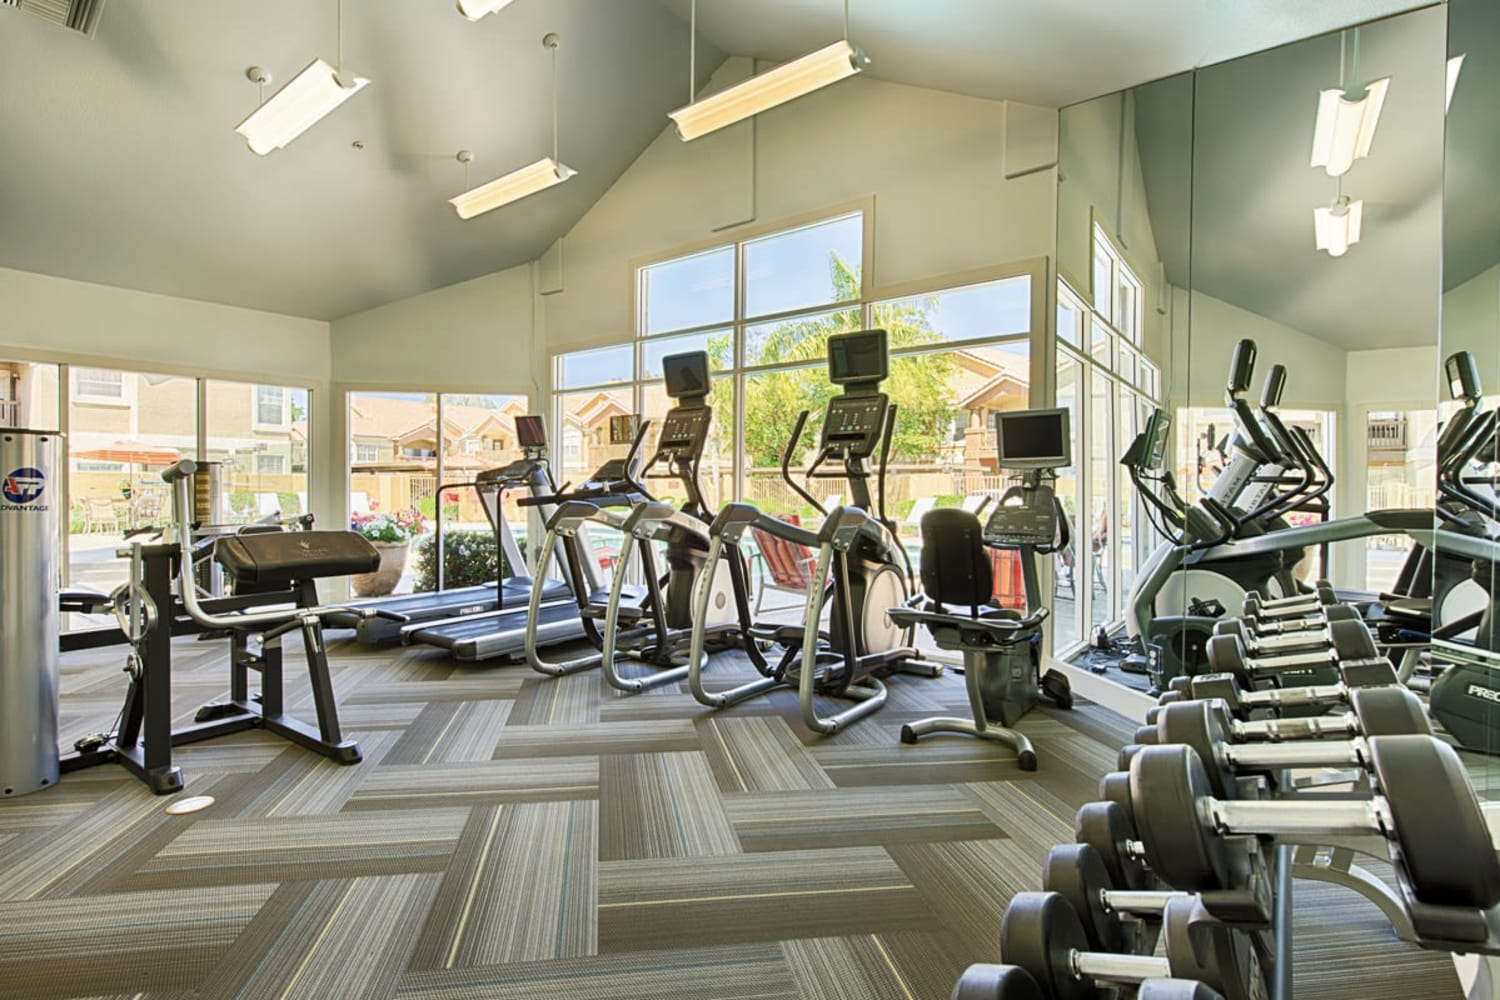 Enjoy an onsite fitness center at Sonoran Vista Apartments in Scottsdale, Arizona